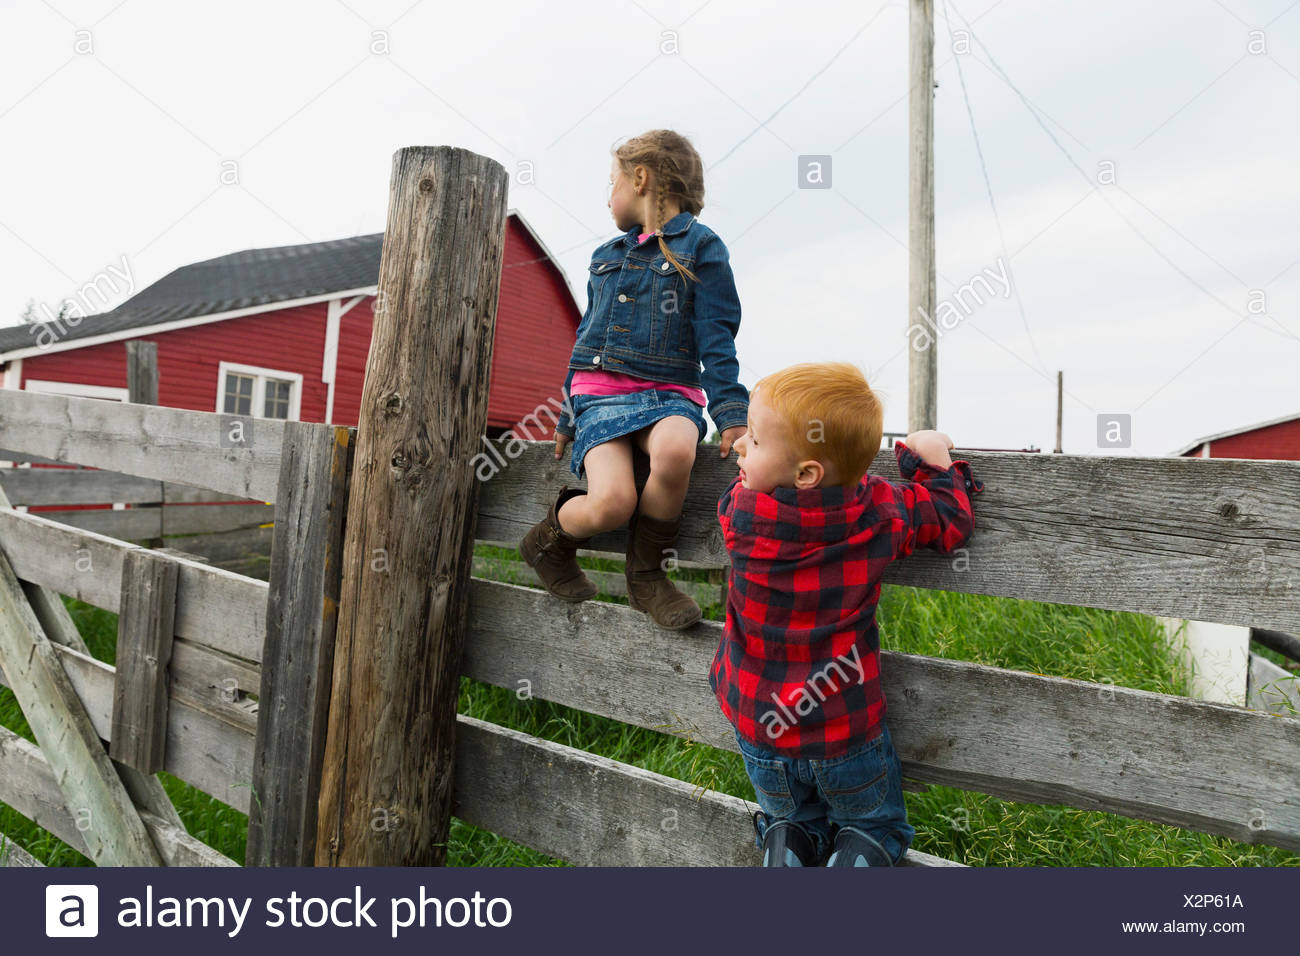 Brother and sister on fence in rural pasture - Stock Image